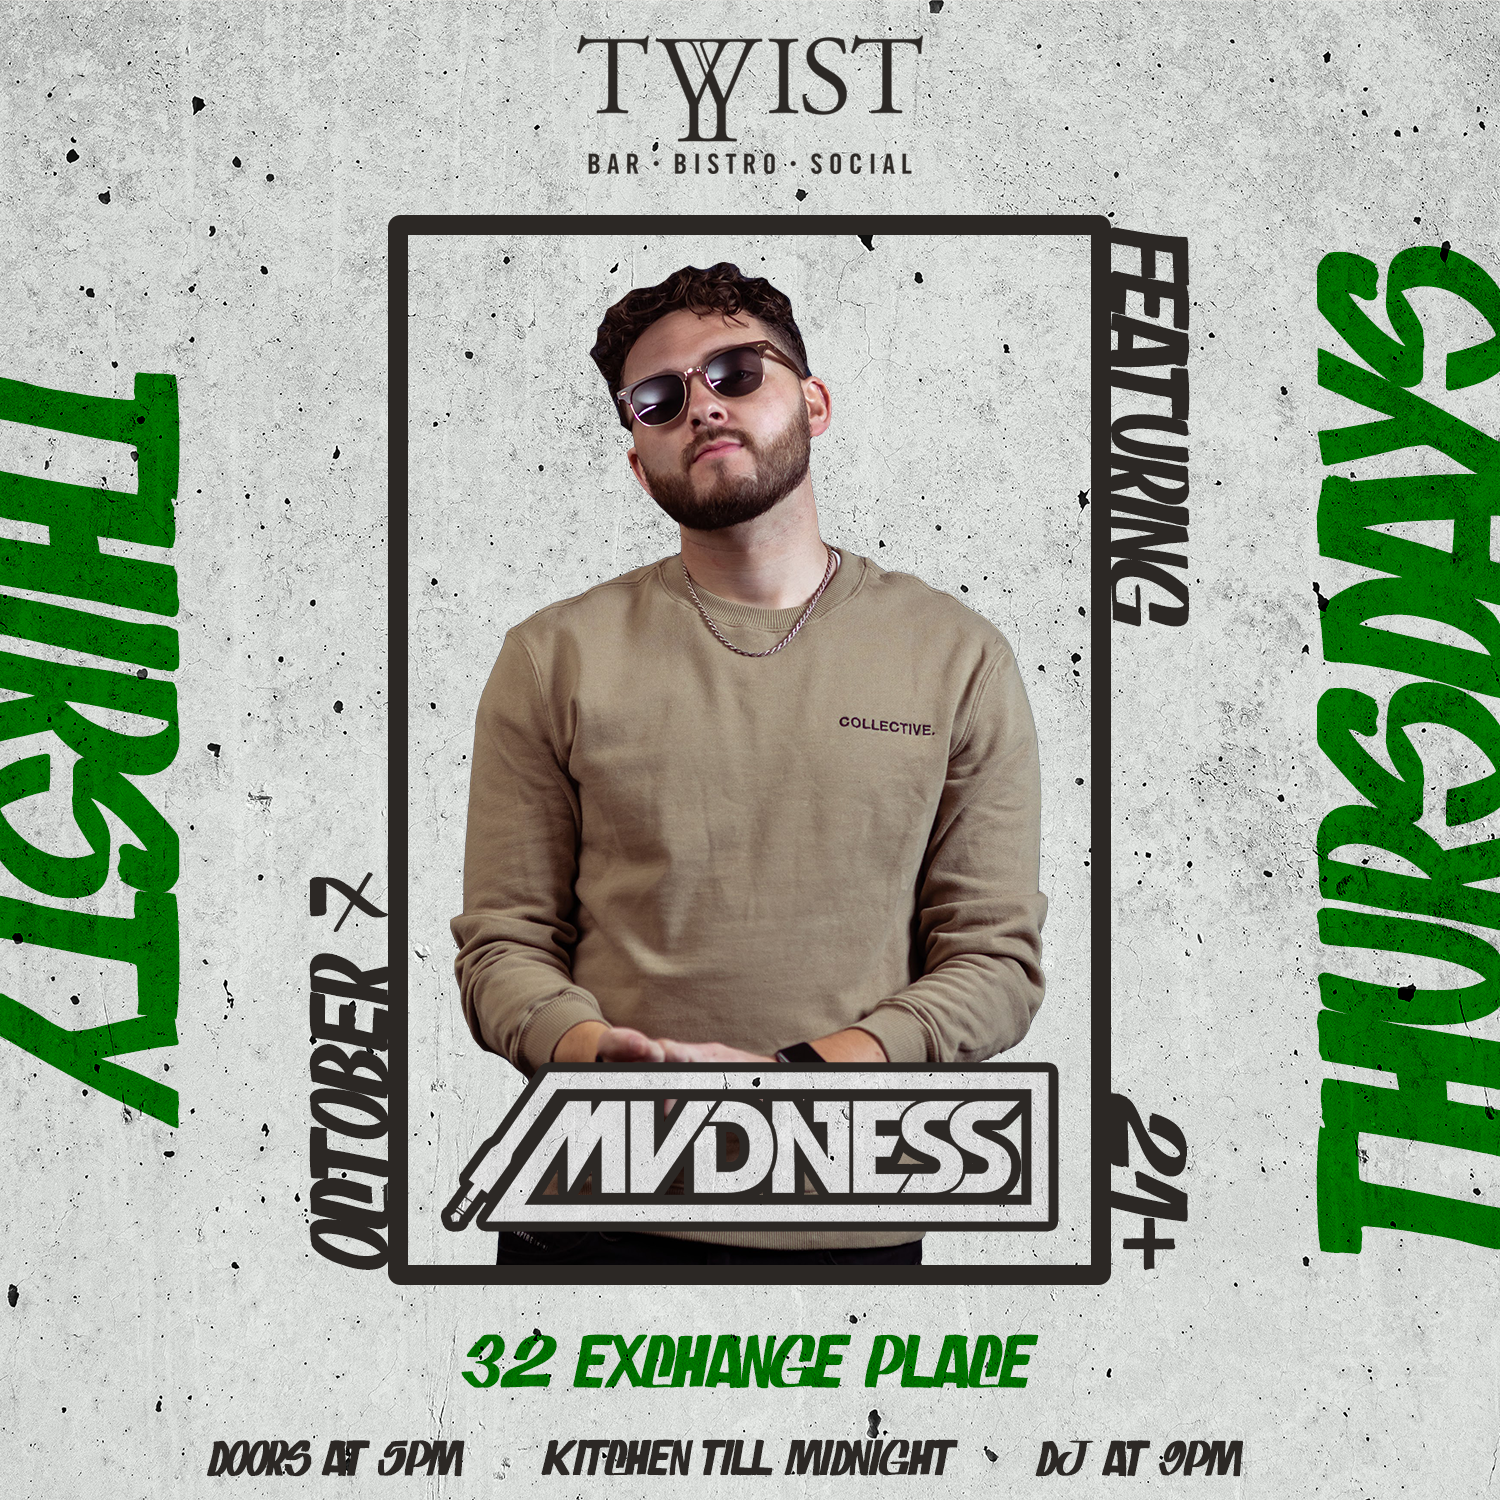 Event flyer for weekly Thirsday night held at Twist Bar & Bistro every Thirsday on 32 Exchance Place in Downtown Salt Lake City featuring live DJs, sports, and drink and food spcecials.